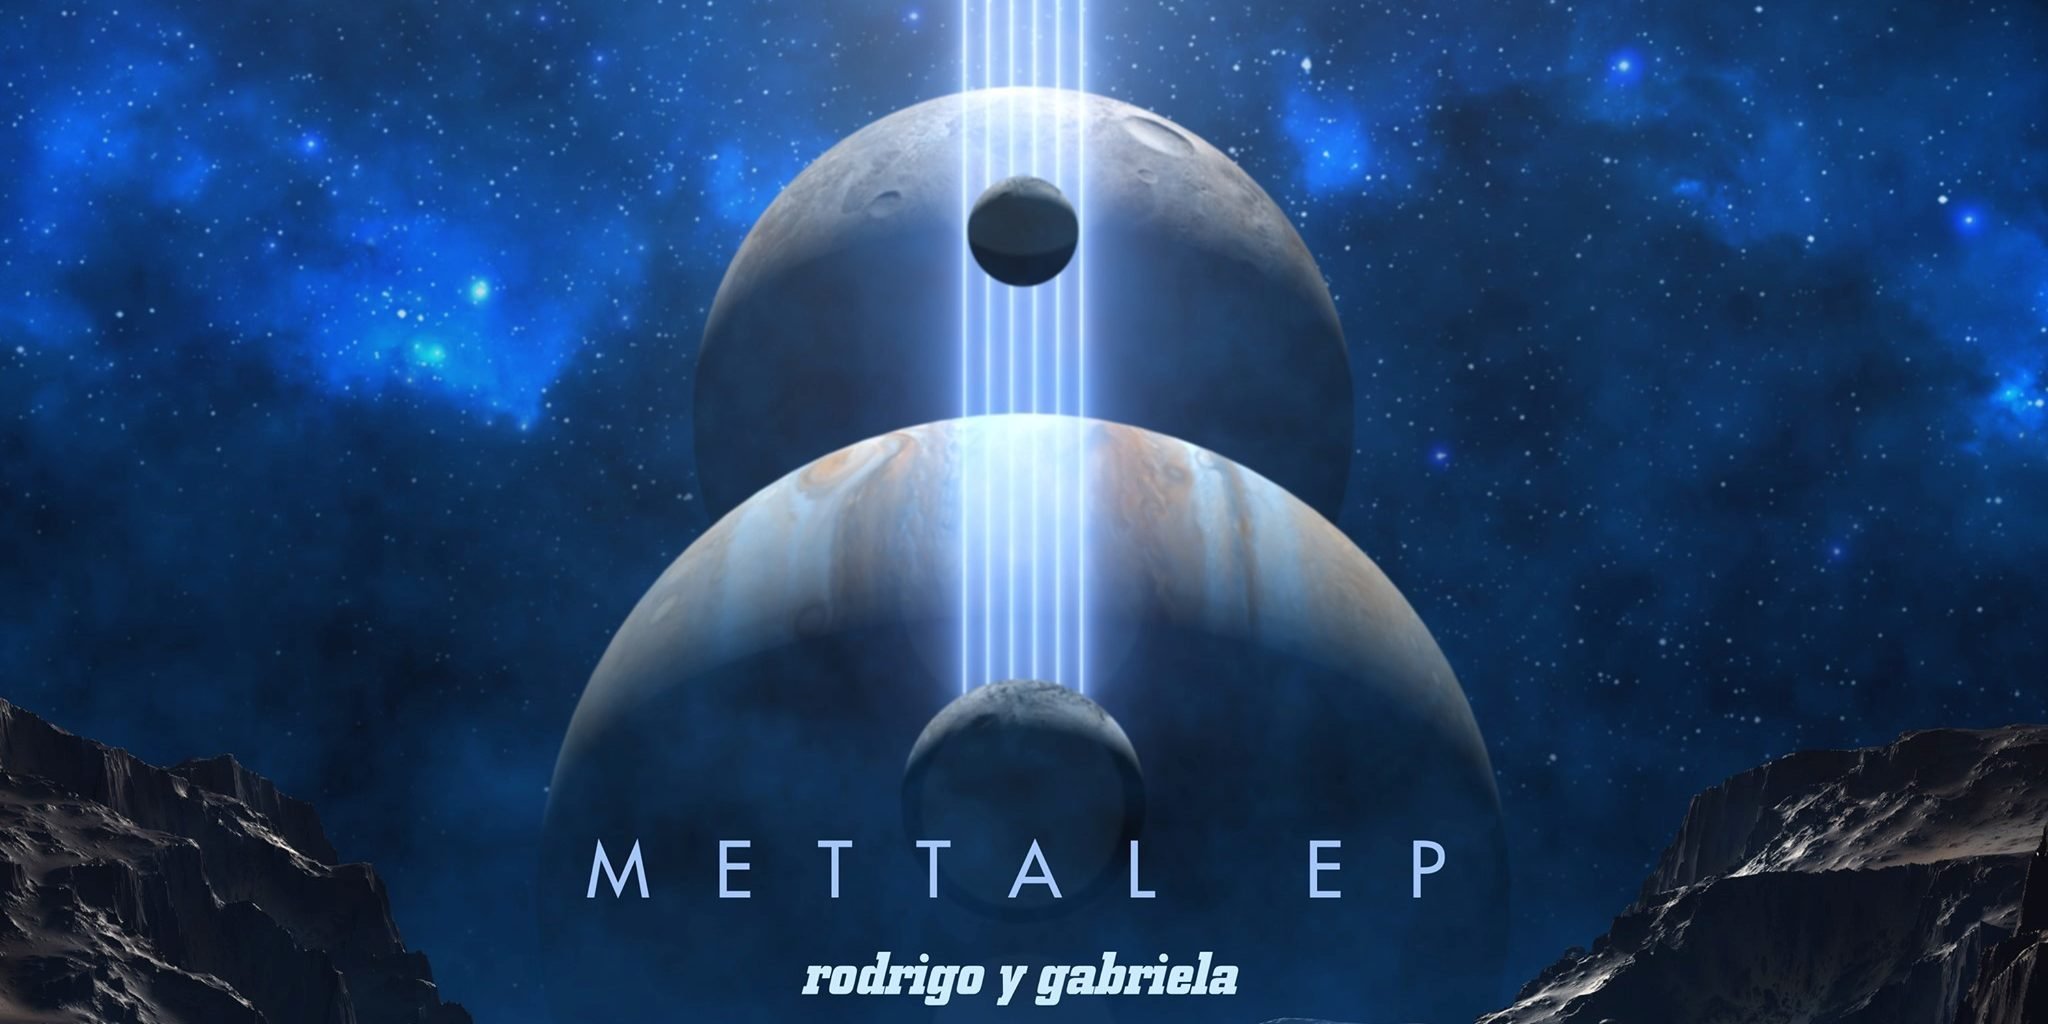 Rodrigo y Gabriela Release 'Mettal EP', Pay Homage To Metal Legends [Listen]